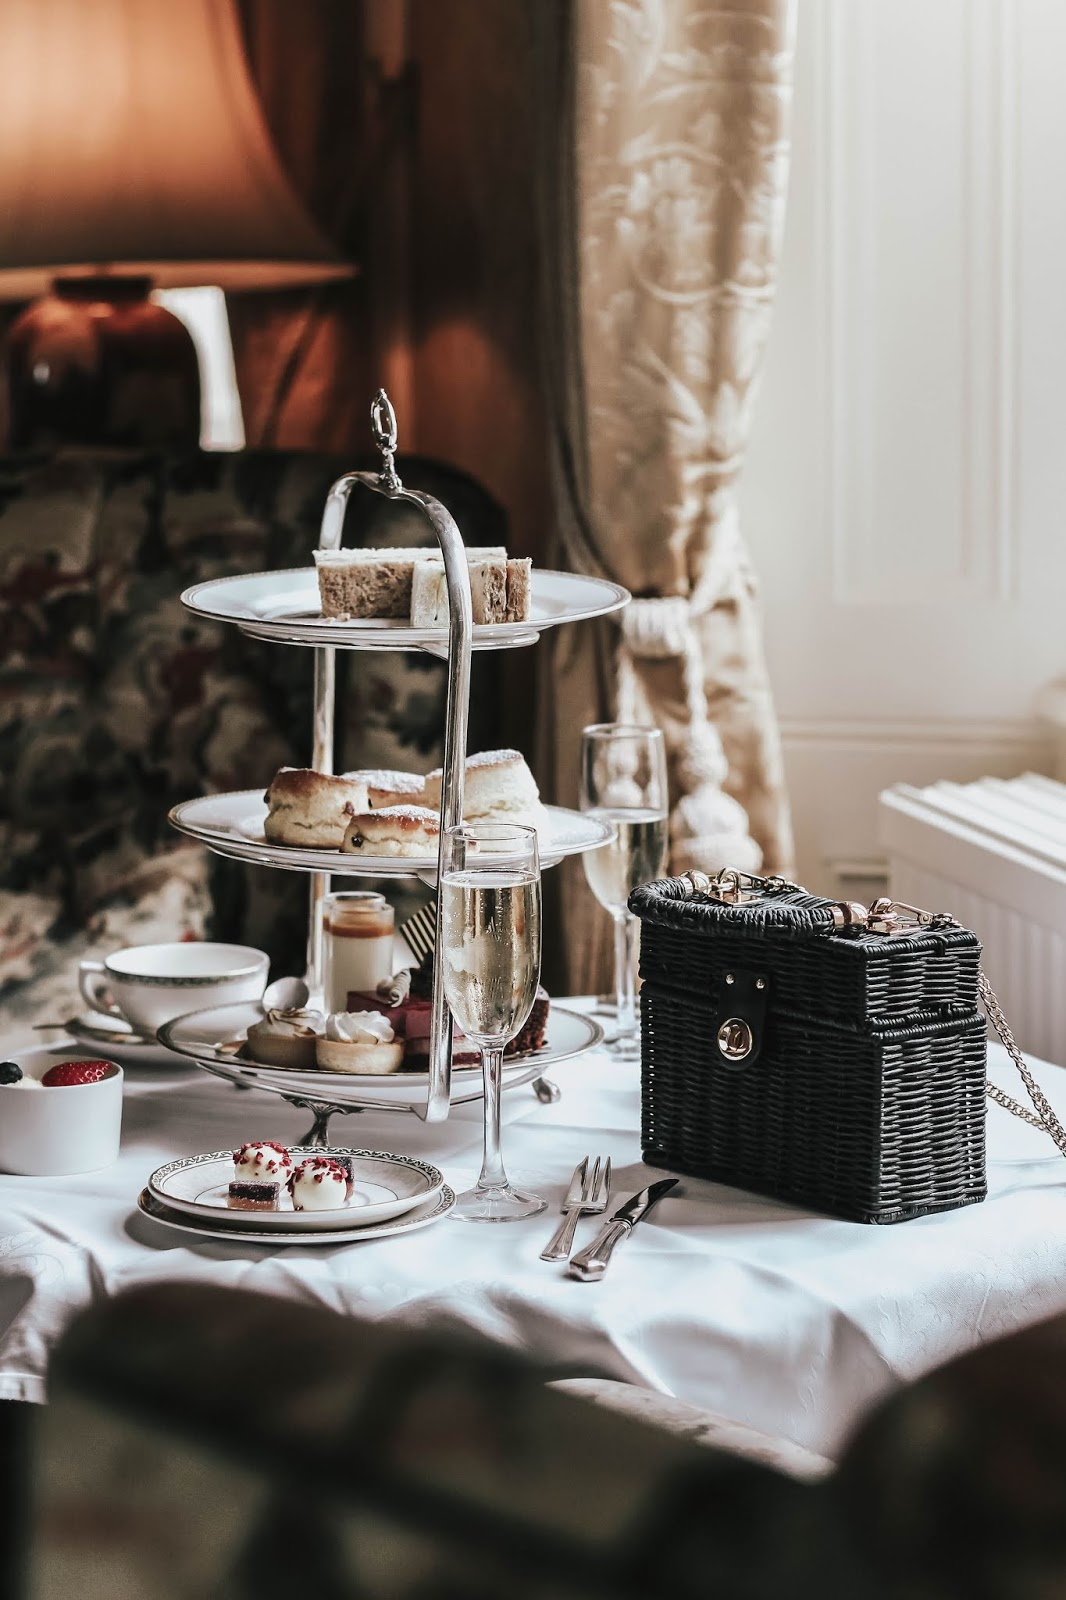 Prezzybox Voucher Ashdown Park Hotel Afternoon Tea Experience